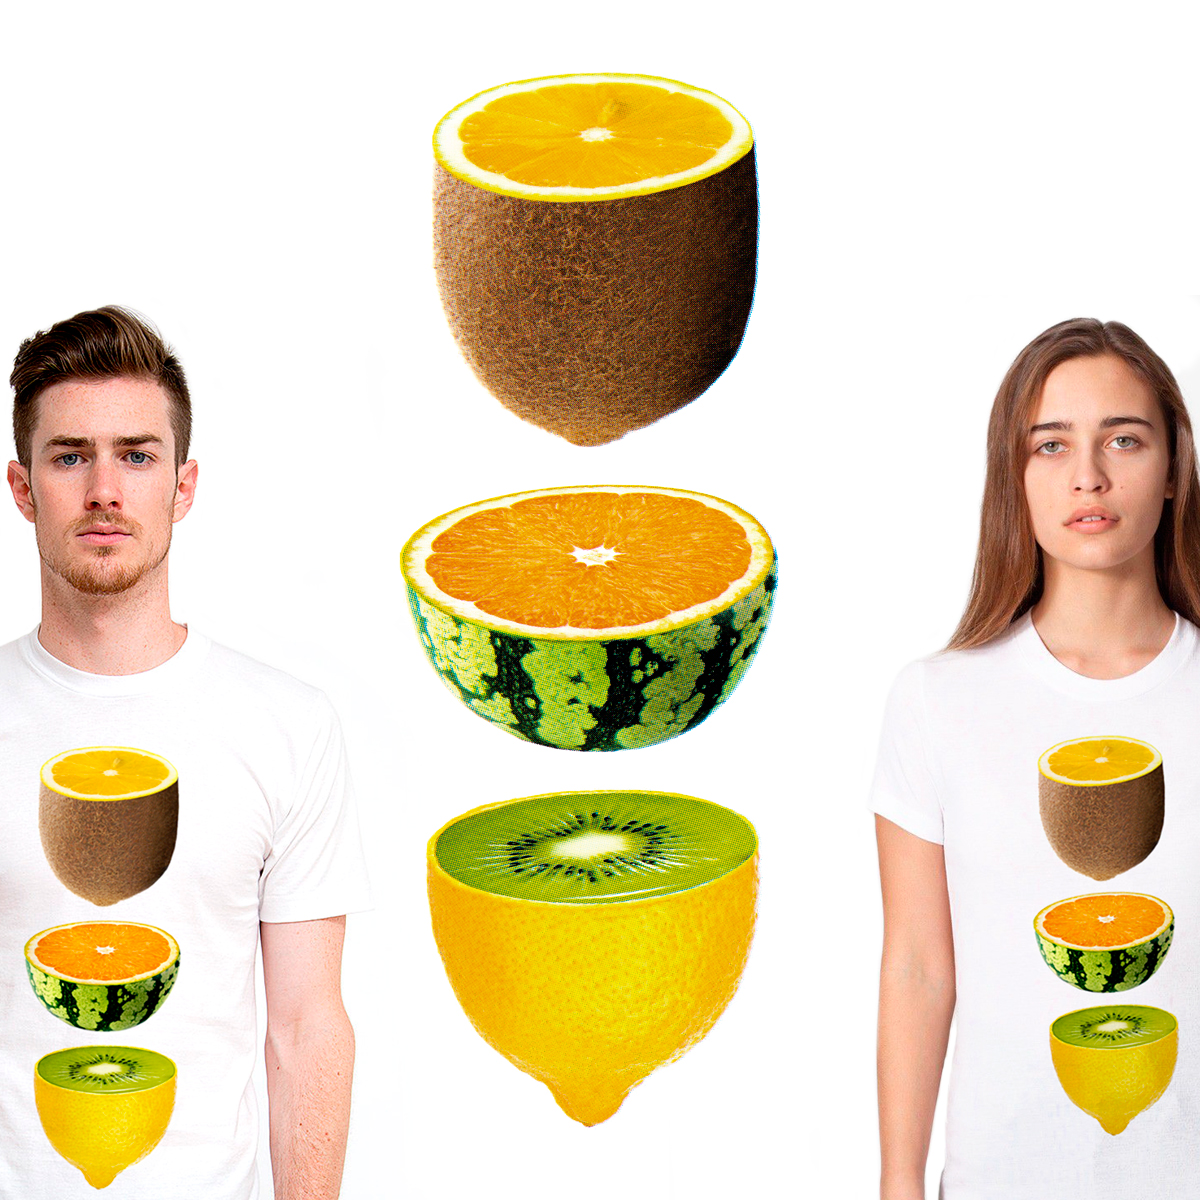 Mixed Fruits, a cool t-shirt design